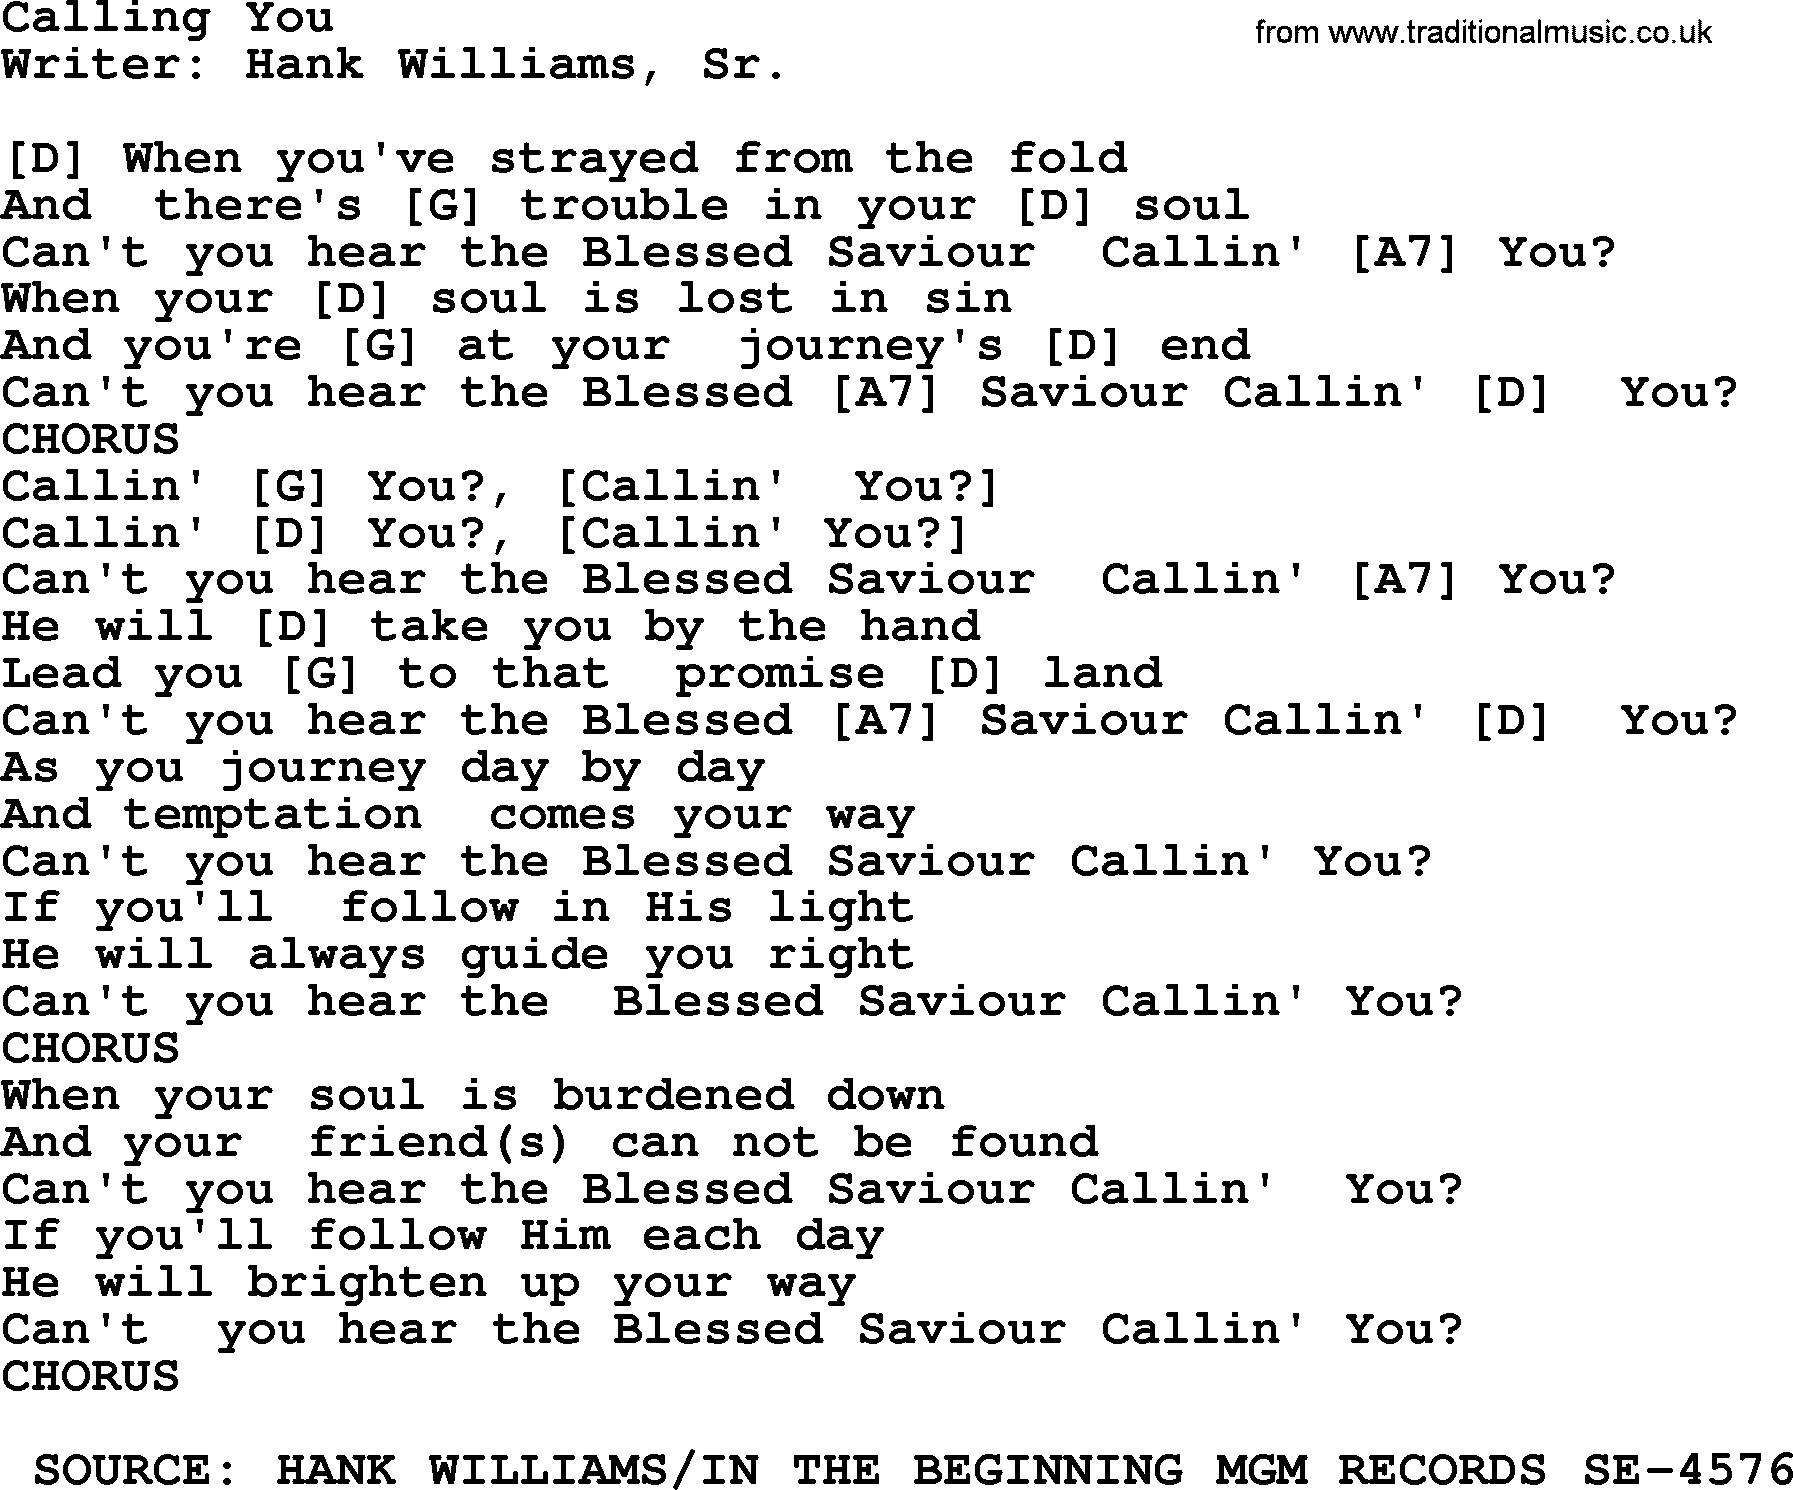 Hank Williams Song Calling You Lyrics And Chords